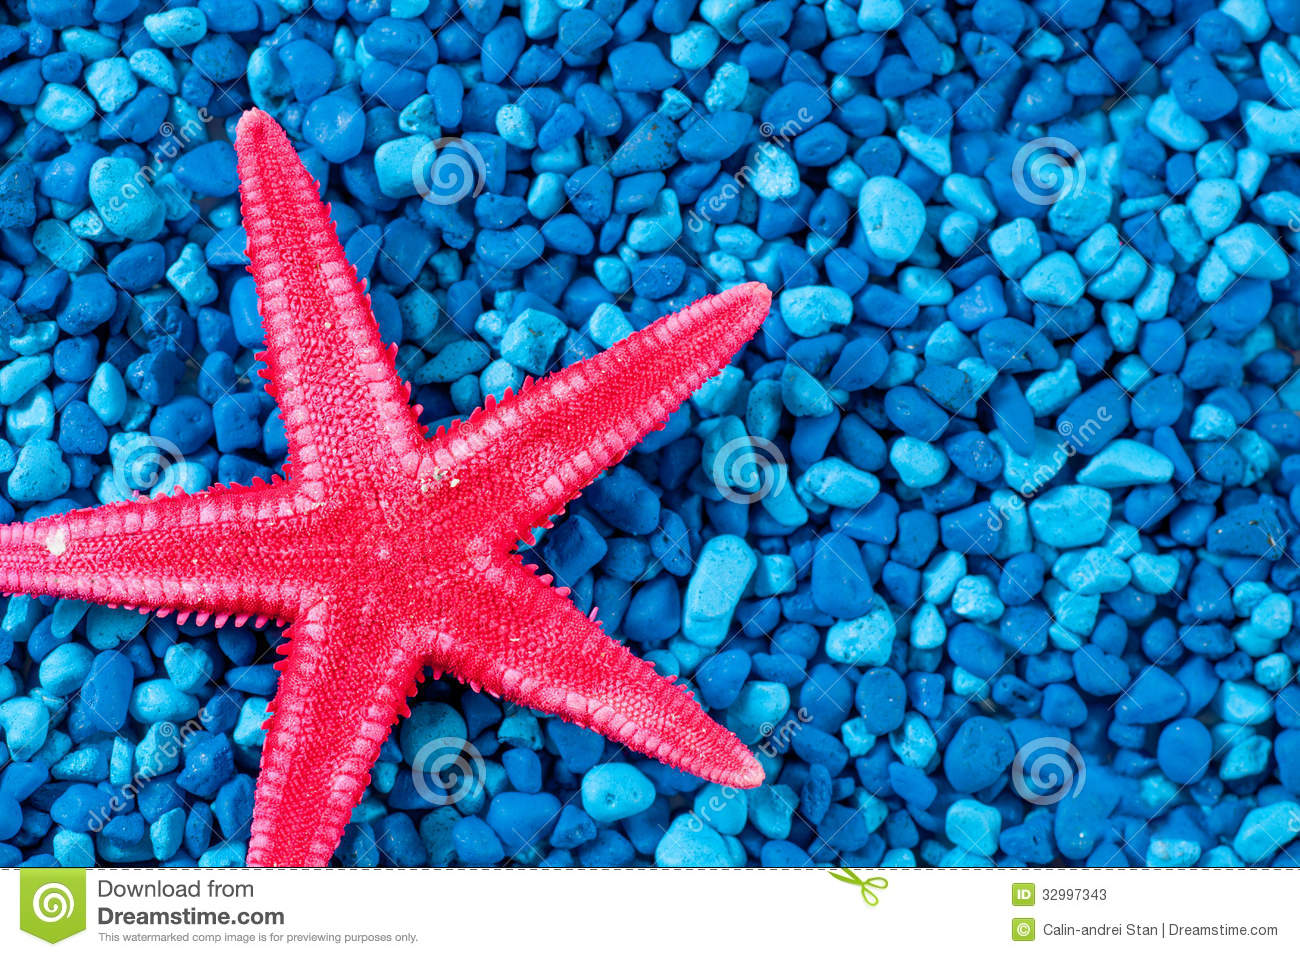 Seahorse Hd Wallpaper Close Up Red Starfish On Blue Background Stock Image